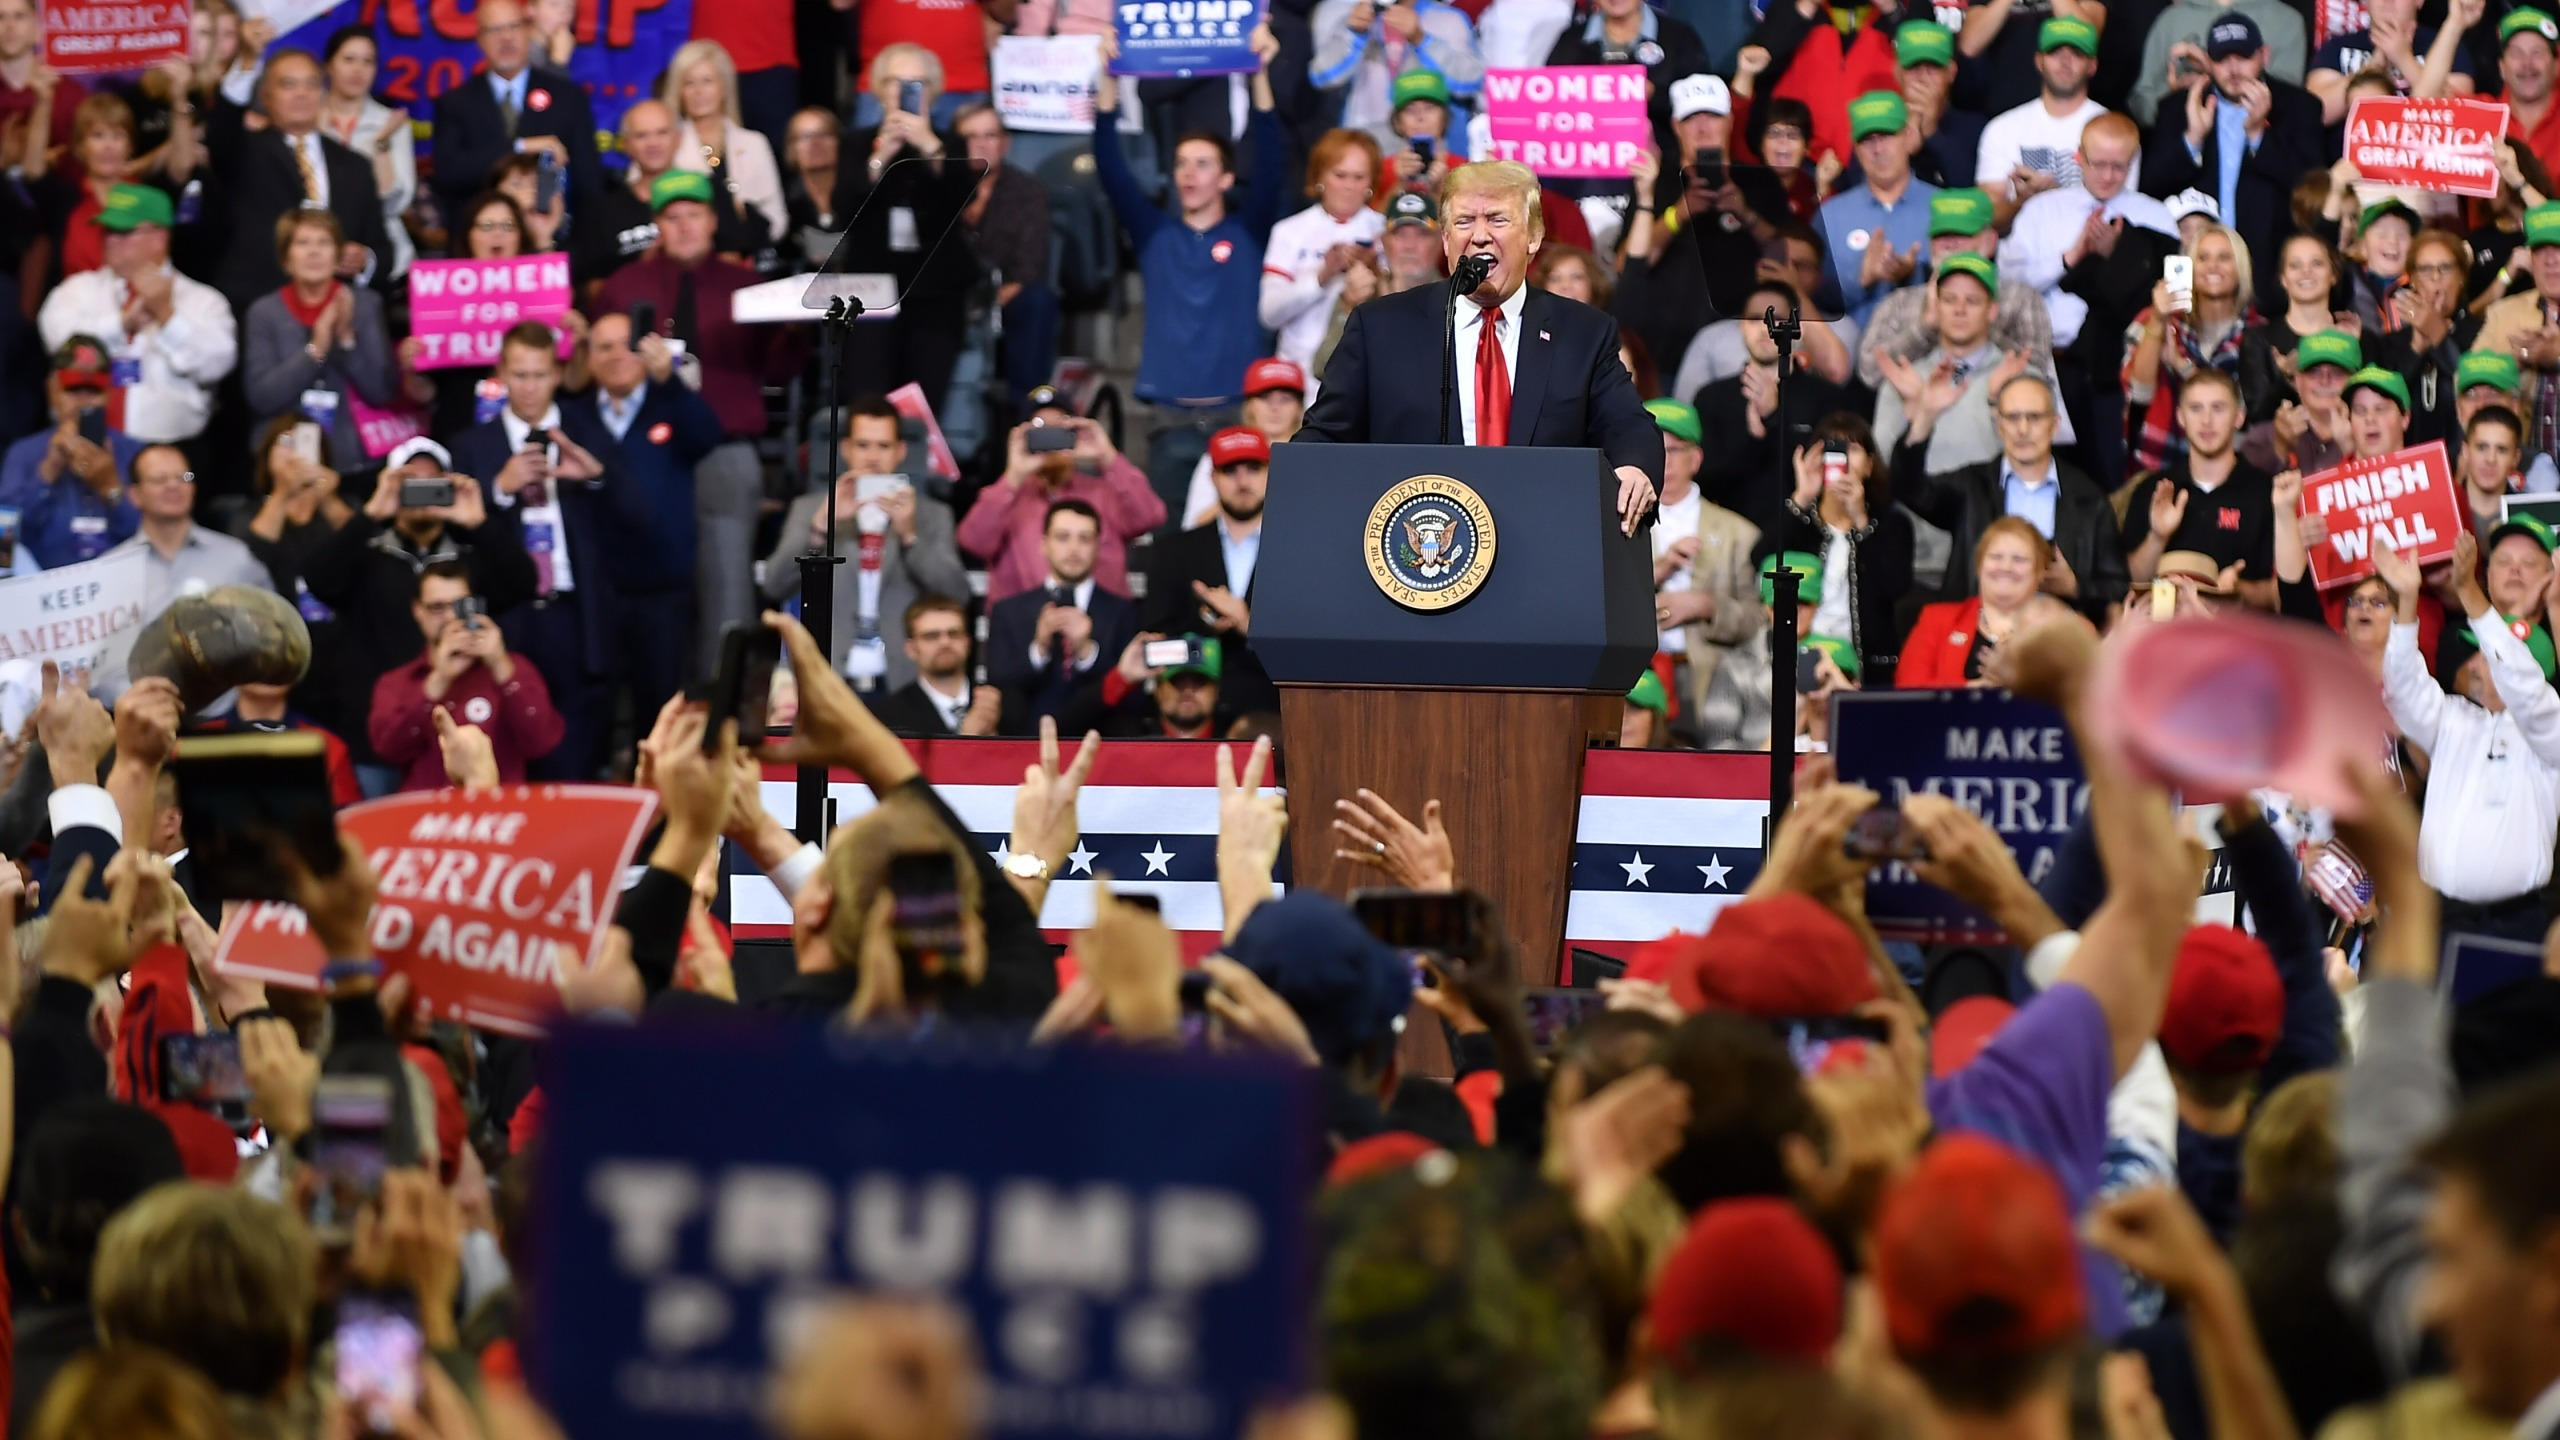 President Donald Trump speaks during a rally at the Mid-America Center in Council Bluffs, Iowa, on Oct. 9, 2018. (Credit: Mandel Ngan / AFP / Getty Images)